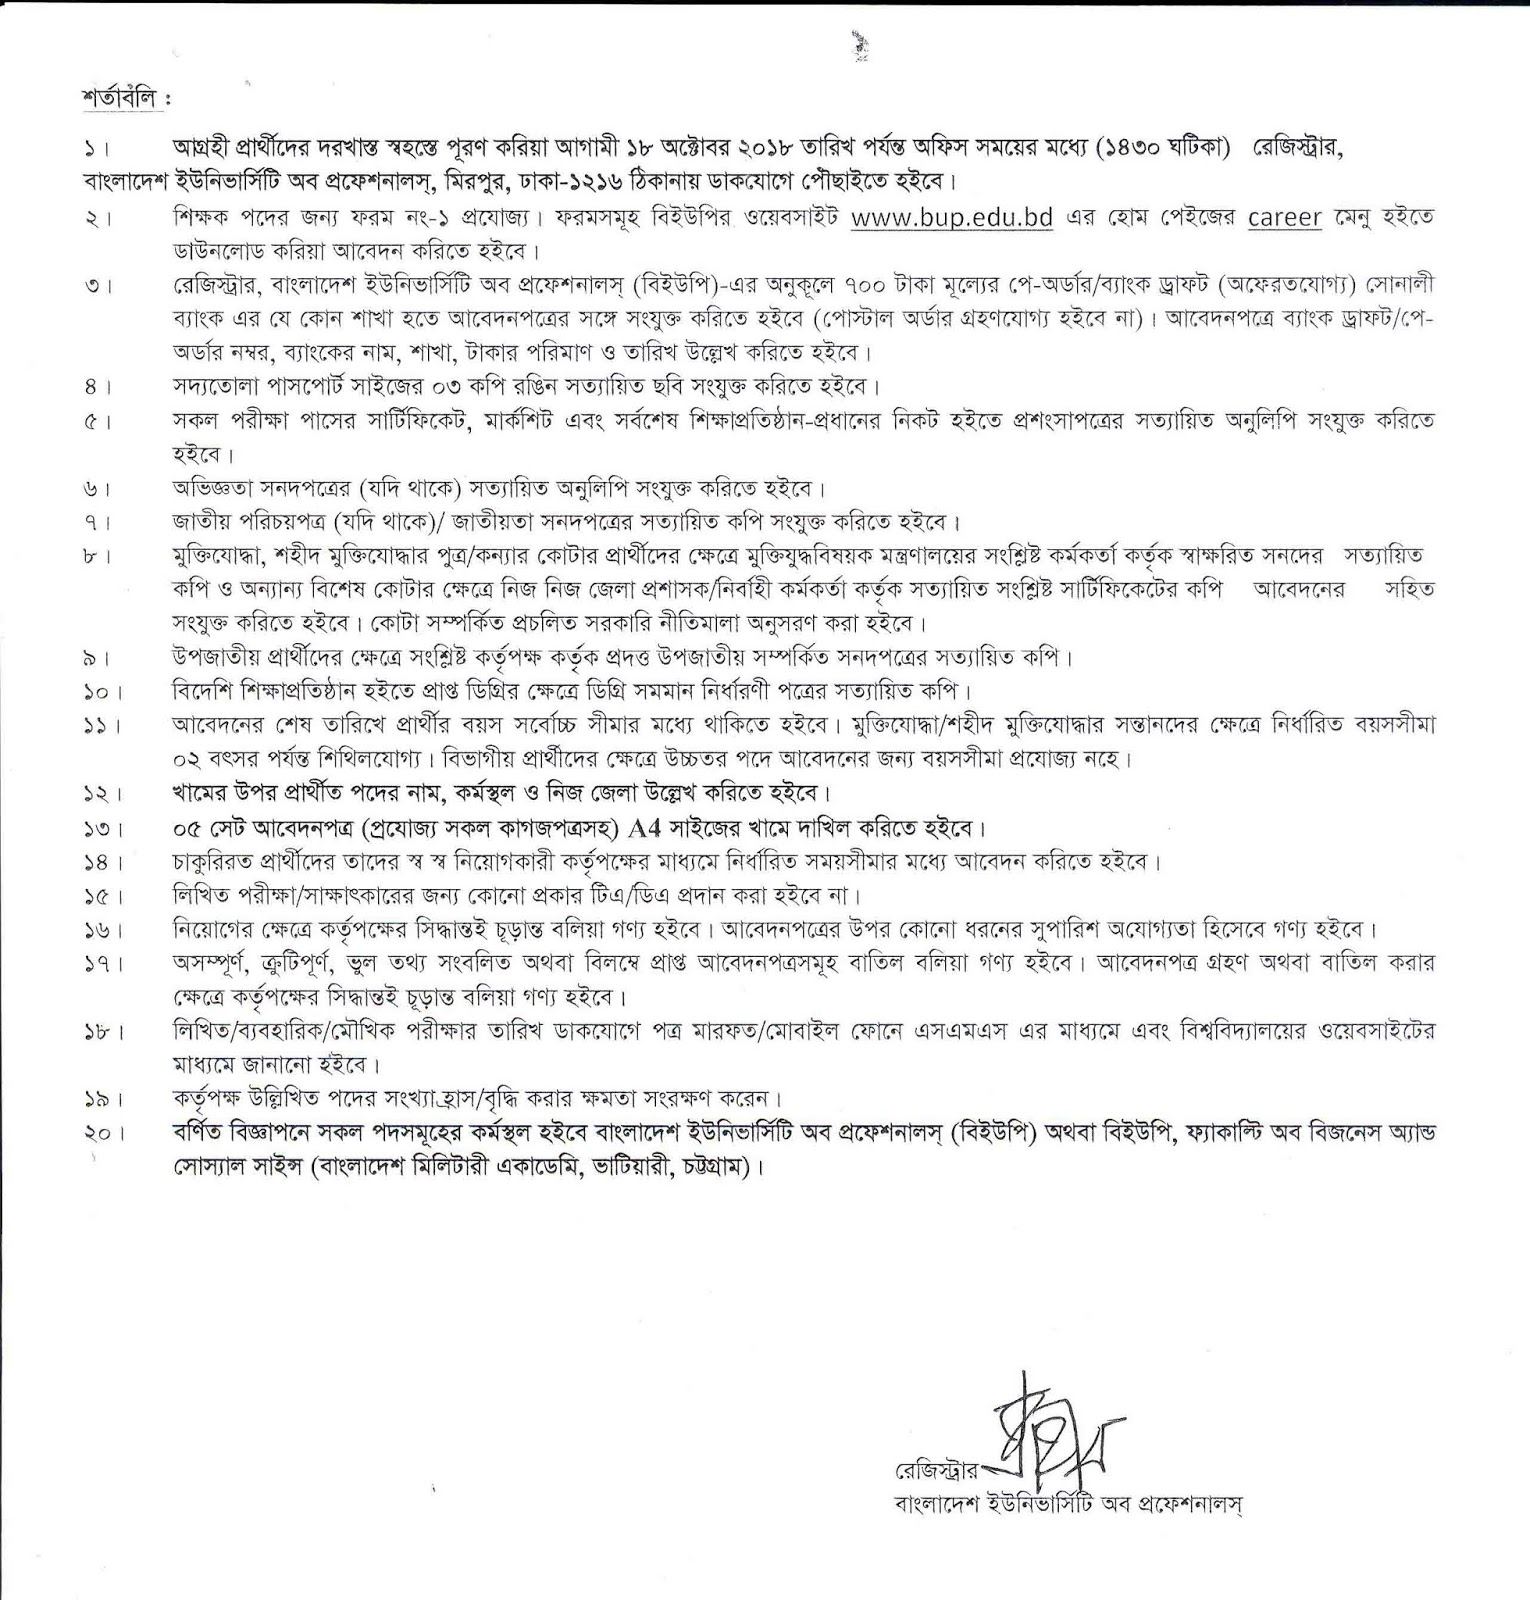 Bangladesh University of Professionals Lecturer Recruitment Circular 2018